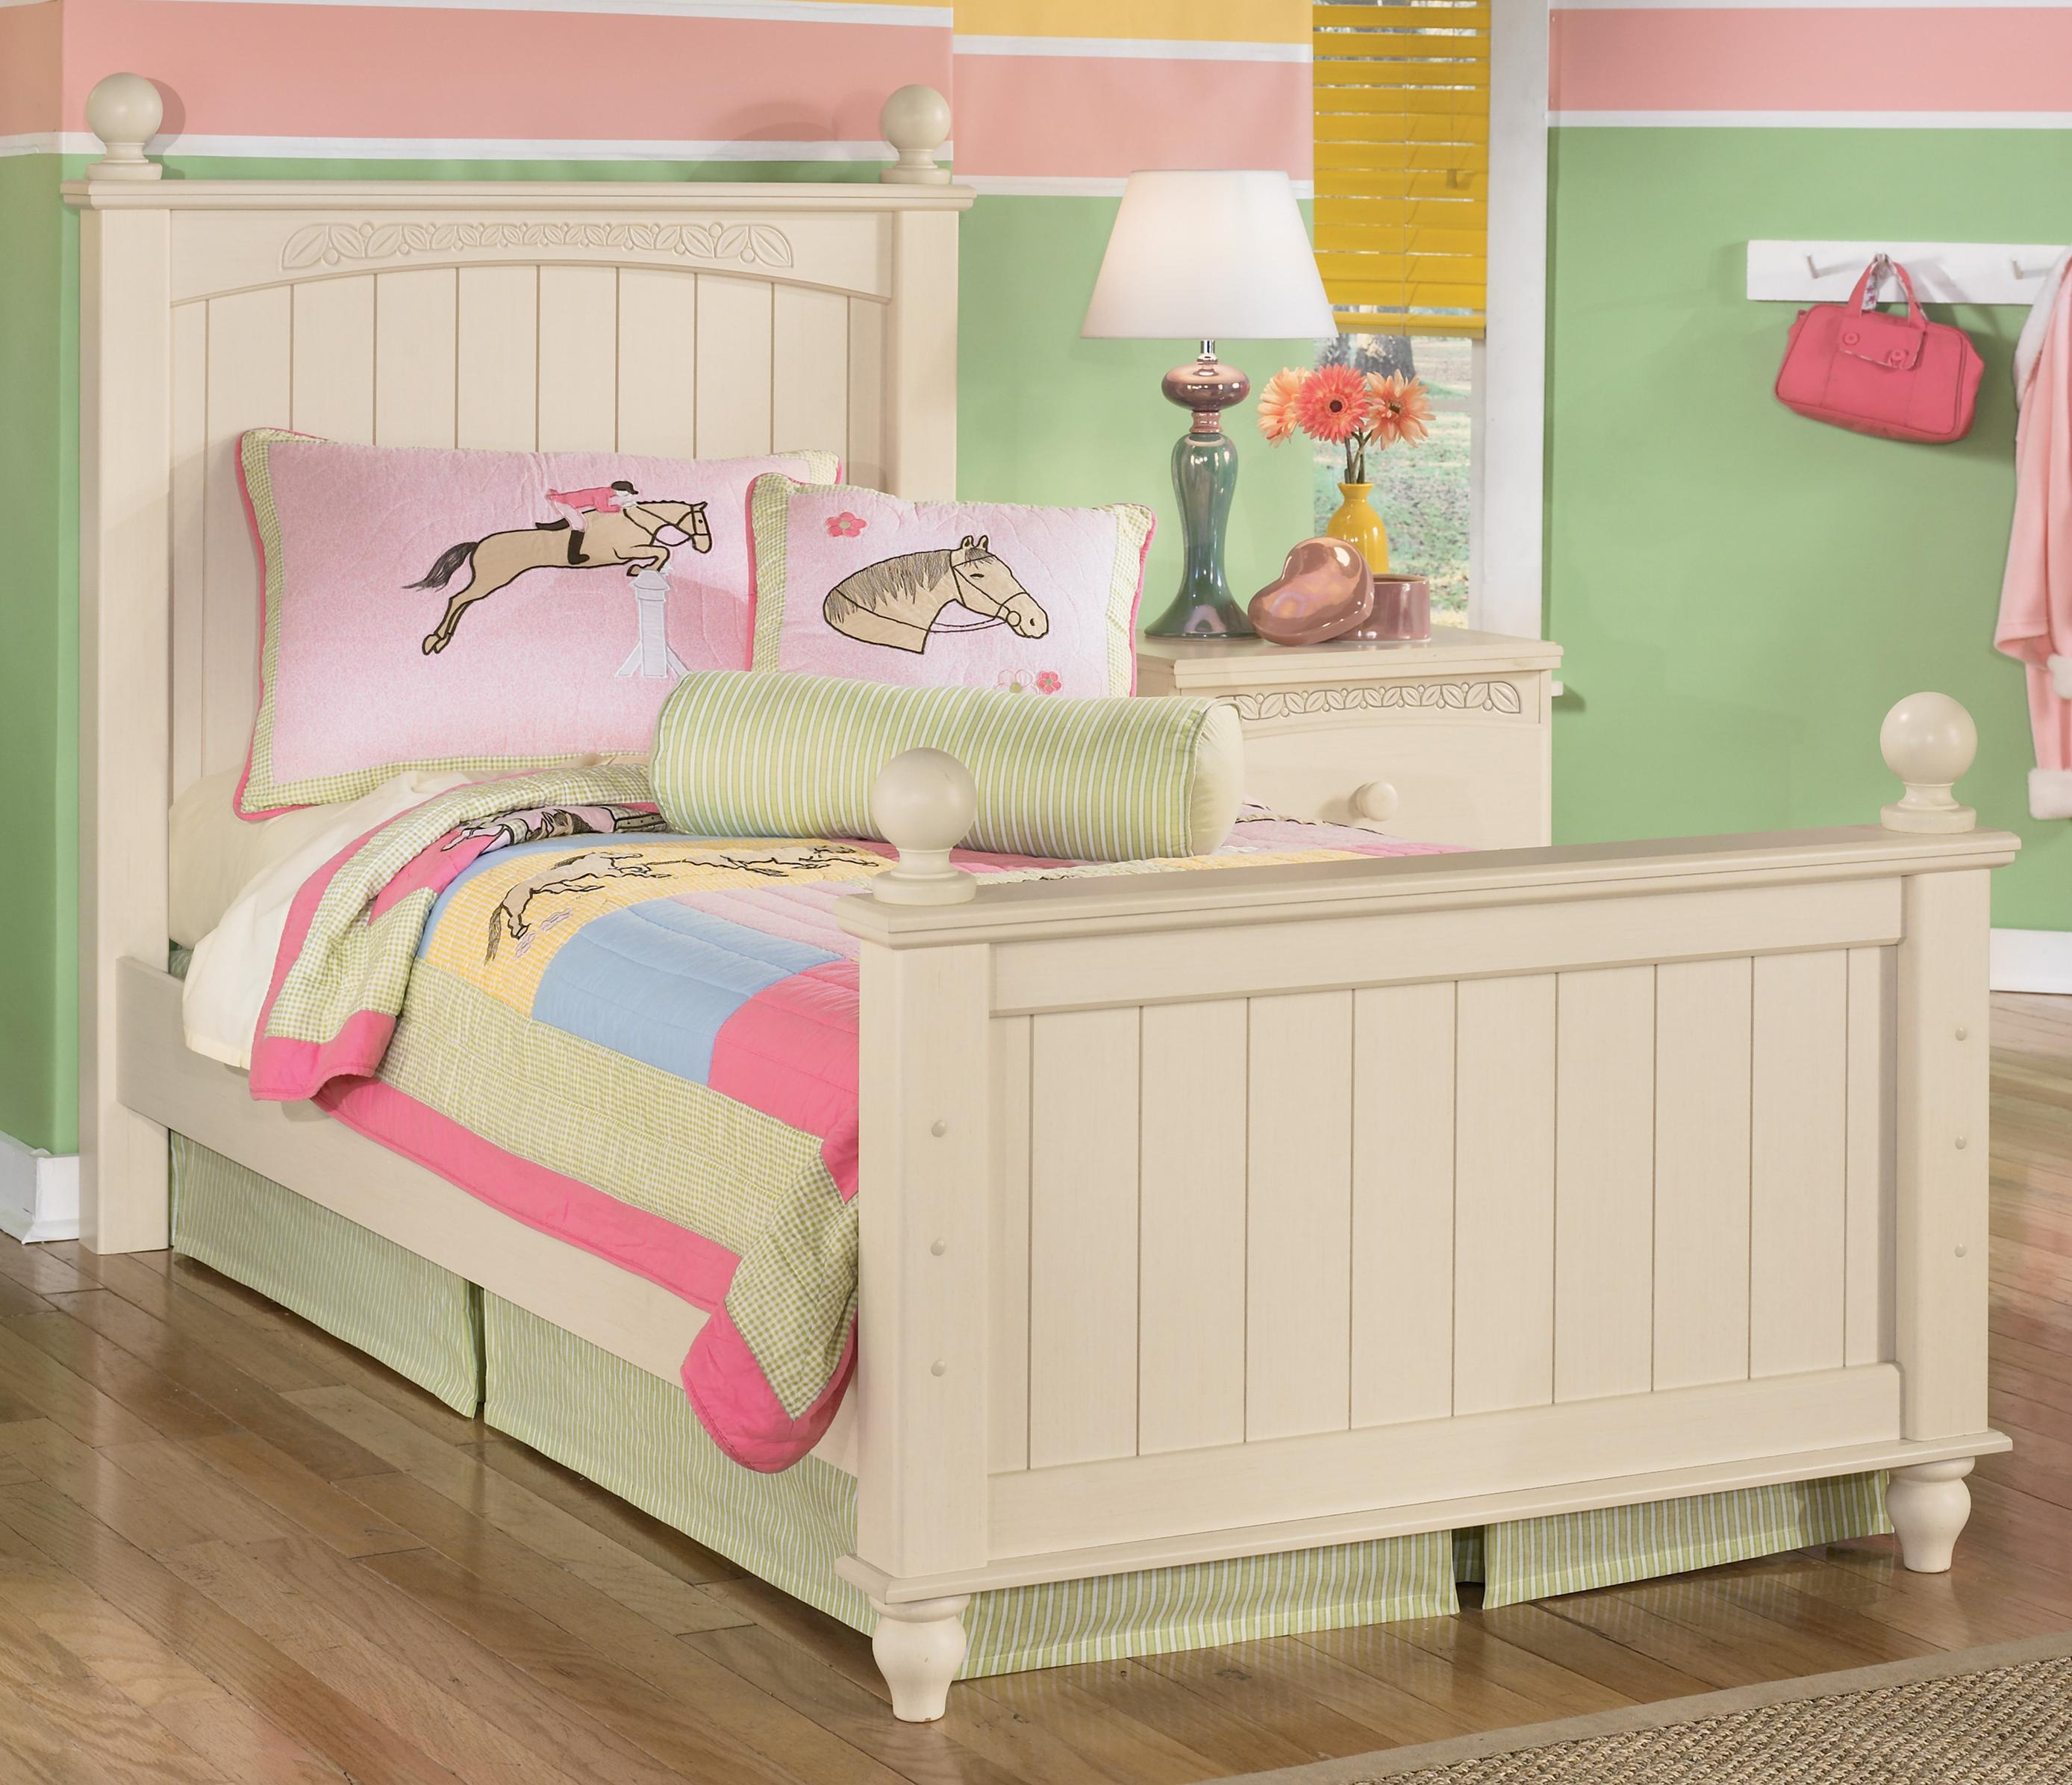 Signature Design by Ashley Cottage Retreat Twin Poster Bed - Item Number: B213-52N+51N+83N